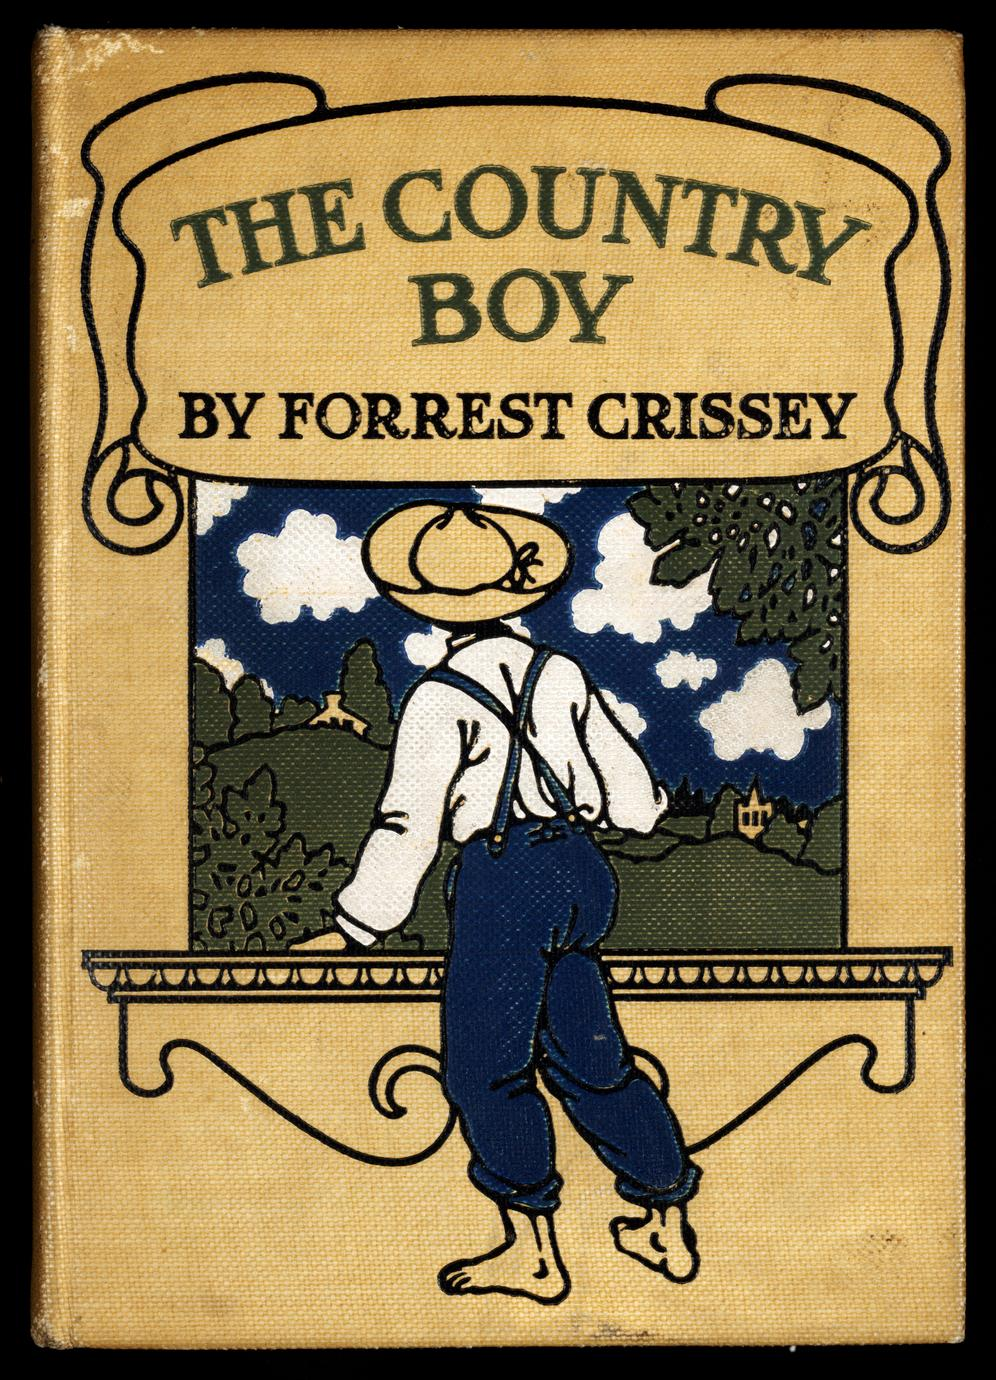 The country boy (1 of 2)